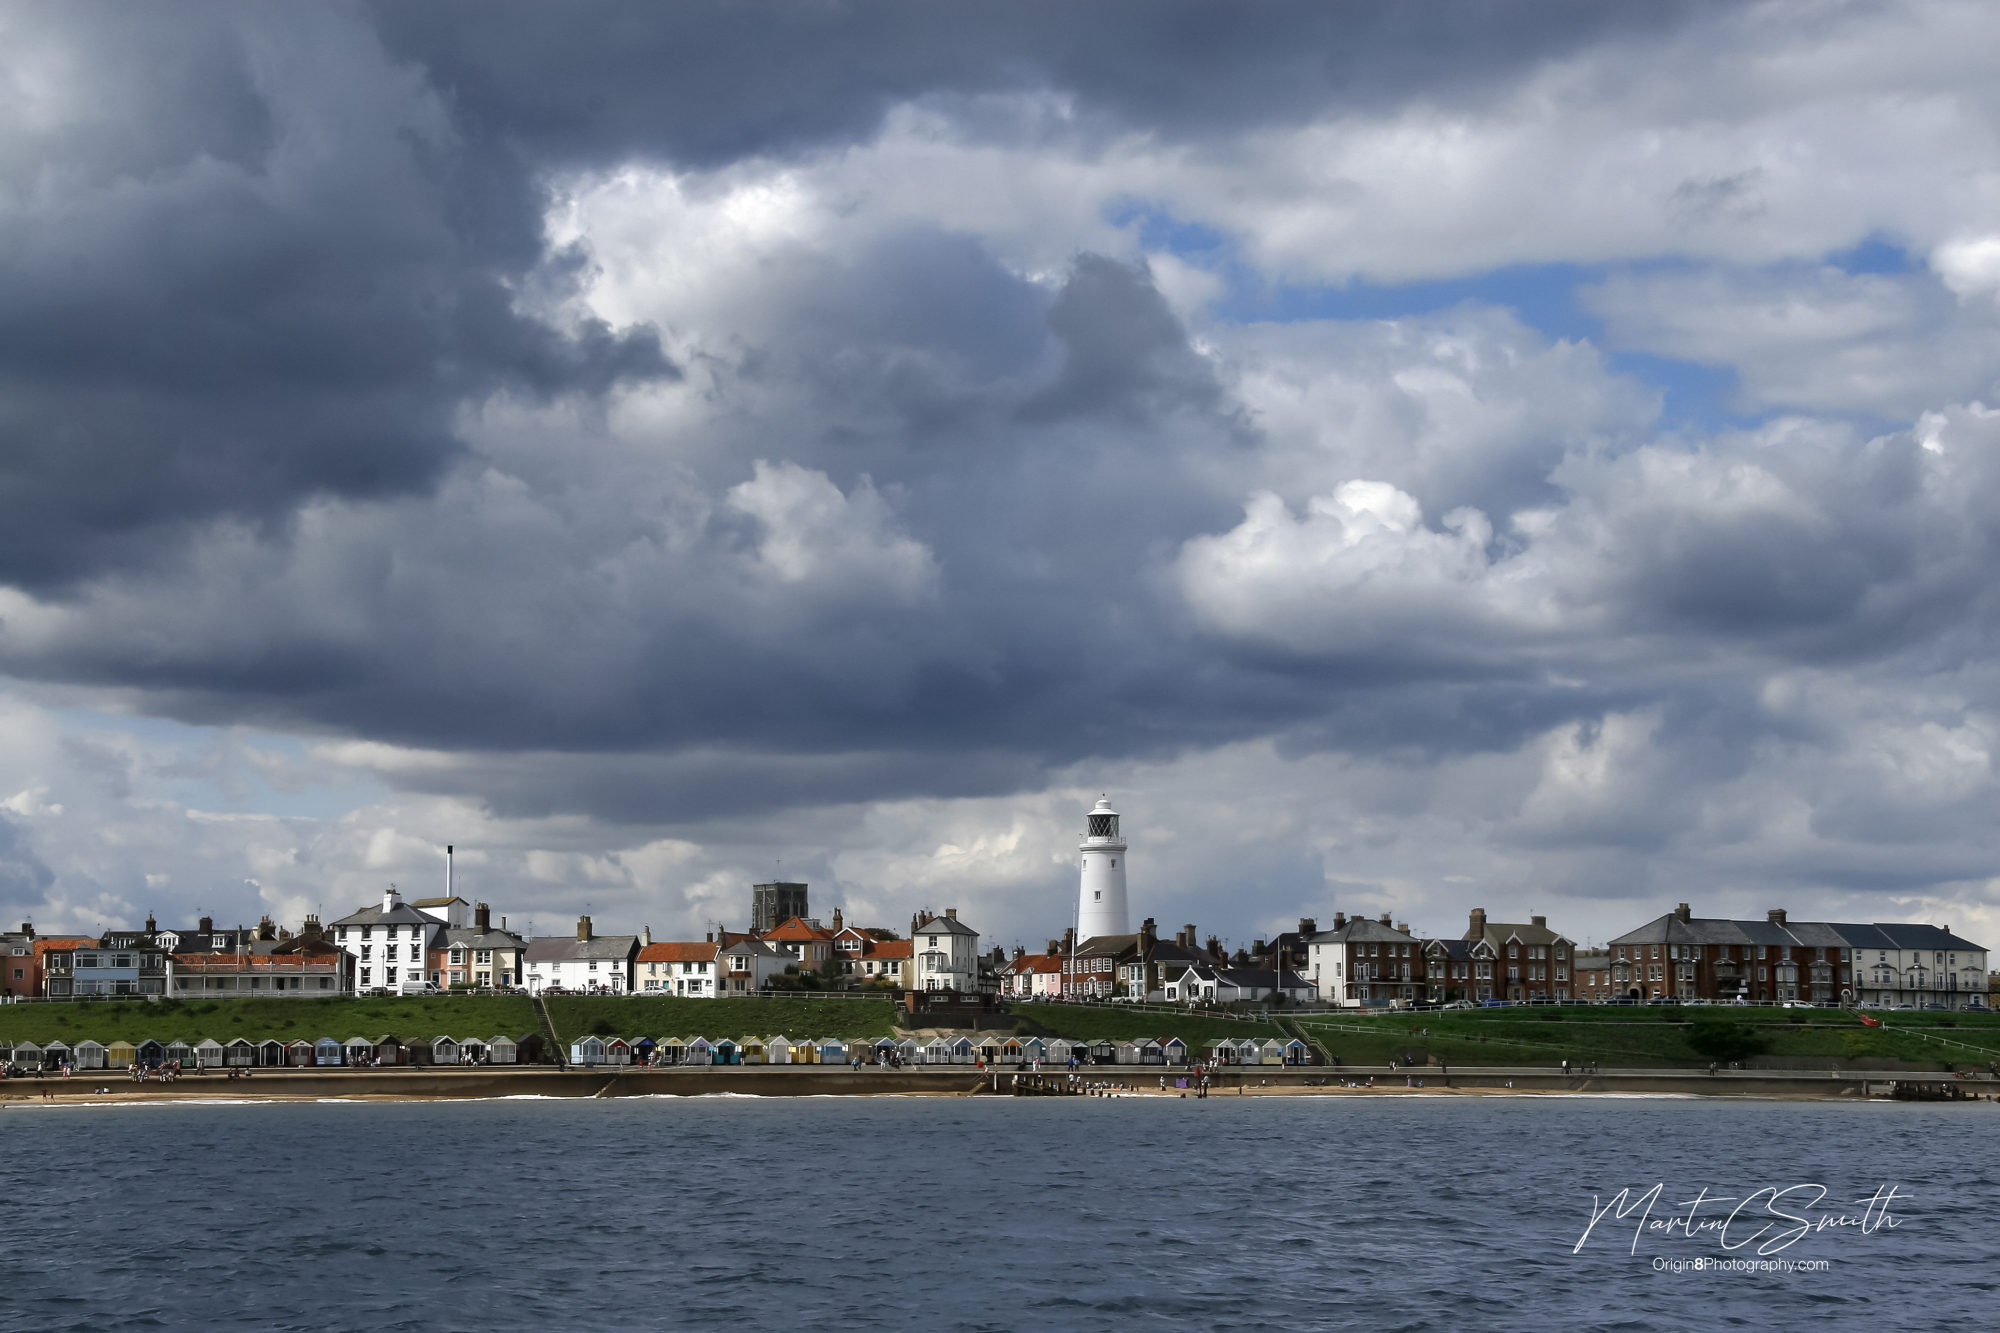 Southwold from the sea